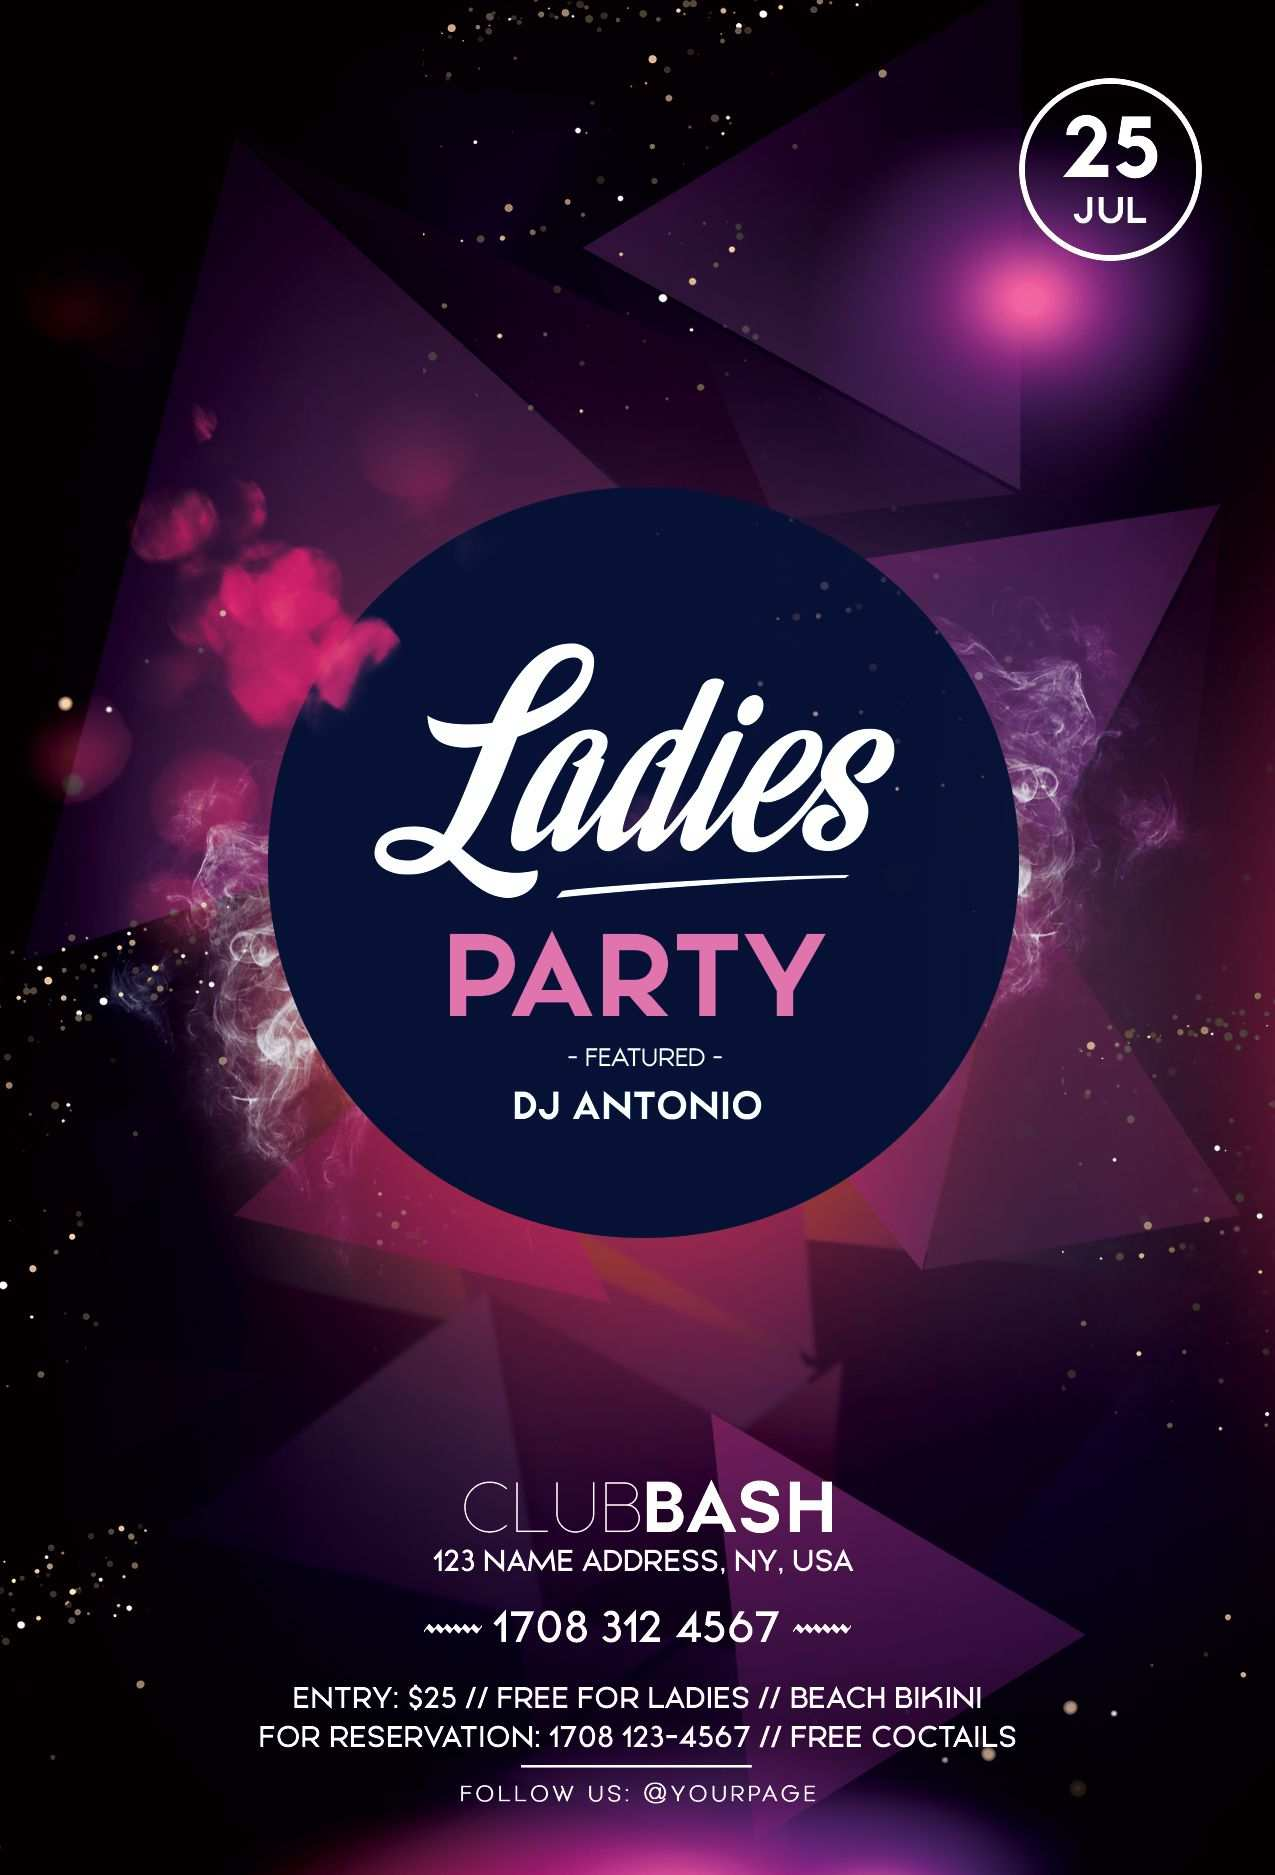 Ladies Party Psd Free Flyer Template Free Psd Flyer Templates